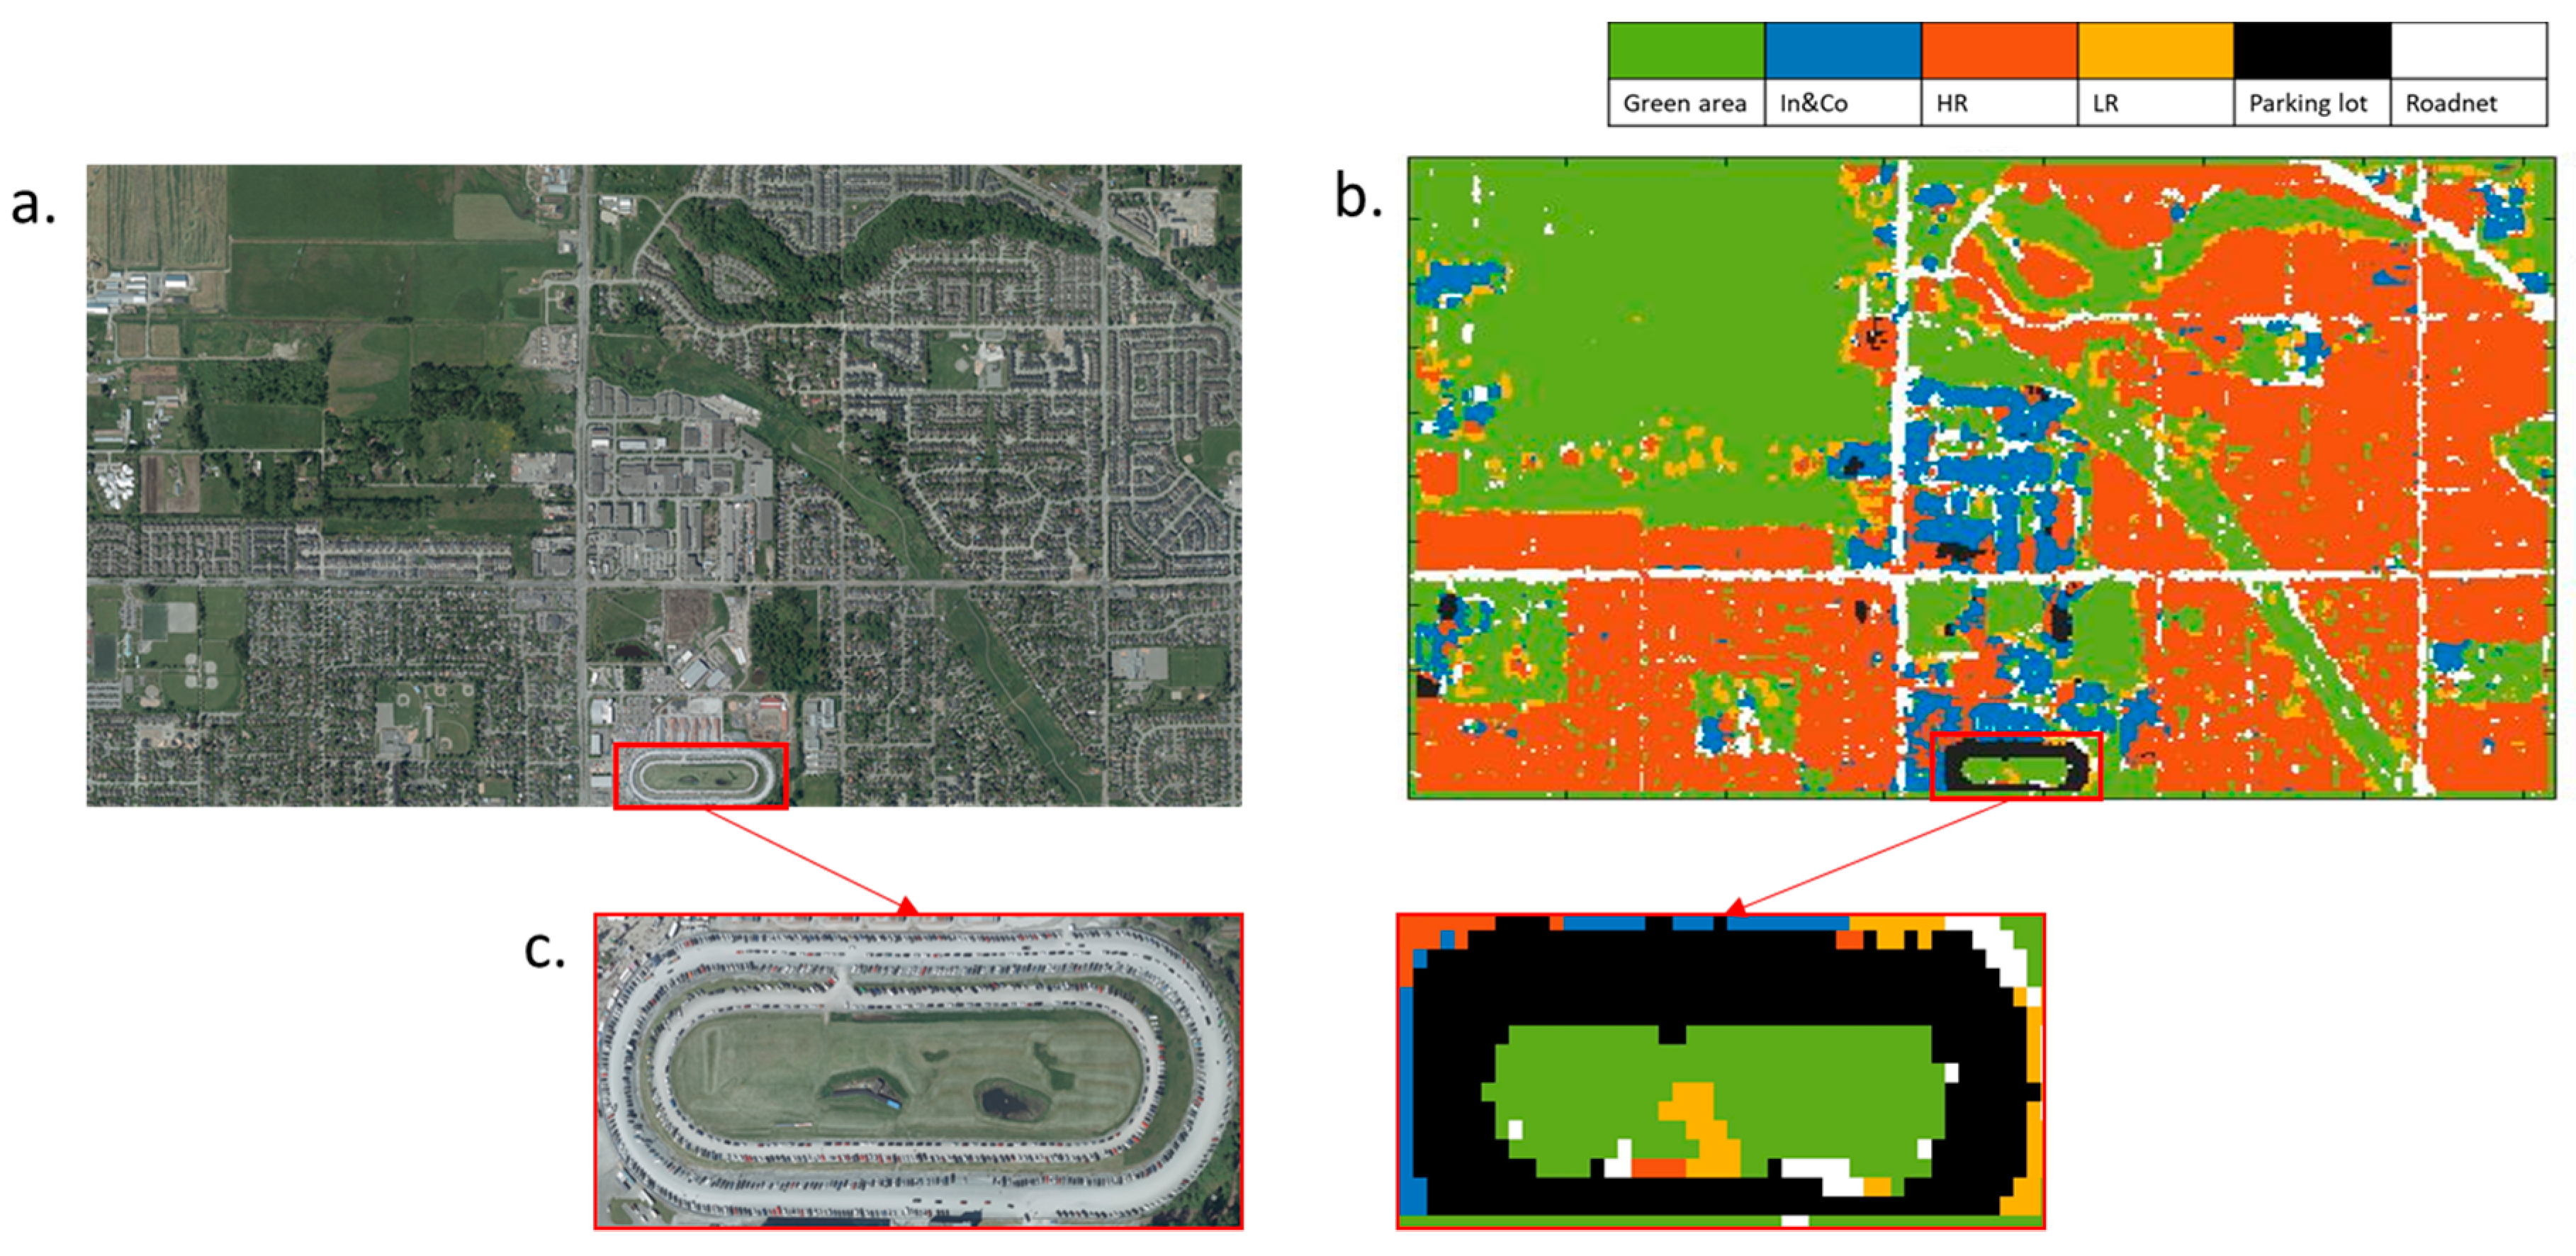 Environments | Free Full-Text | Land-Use Change Detection with